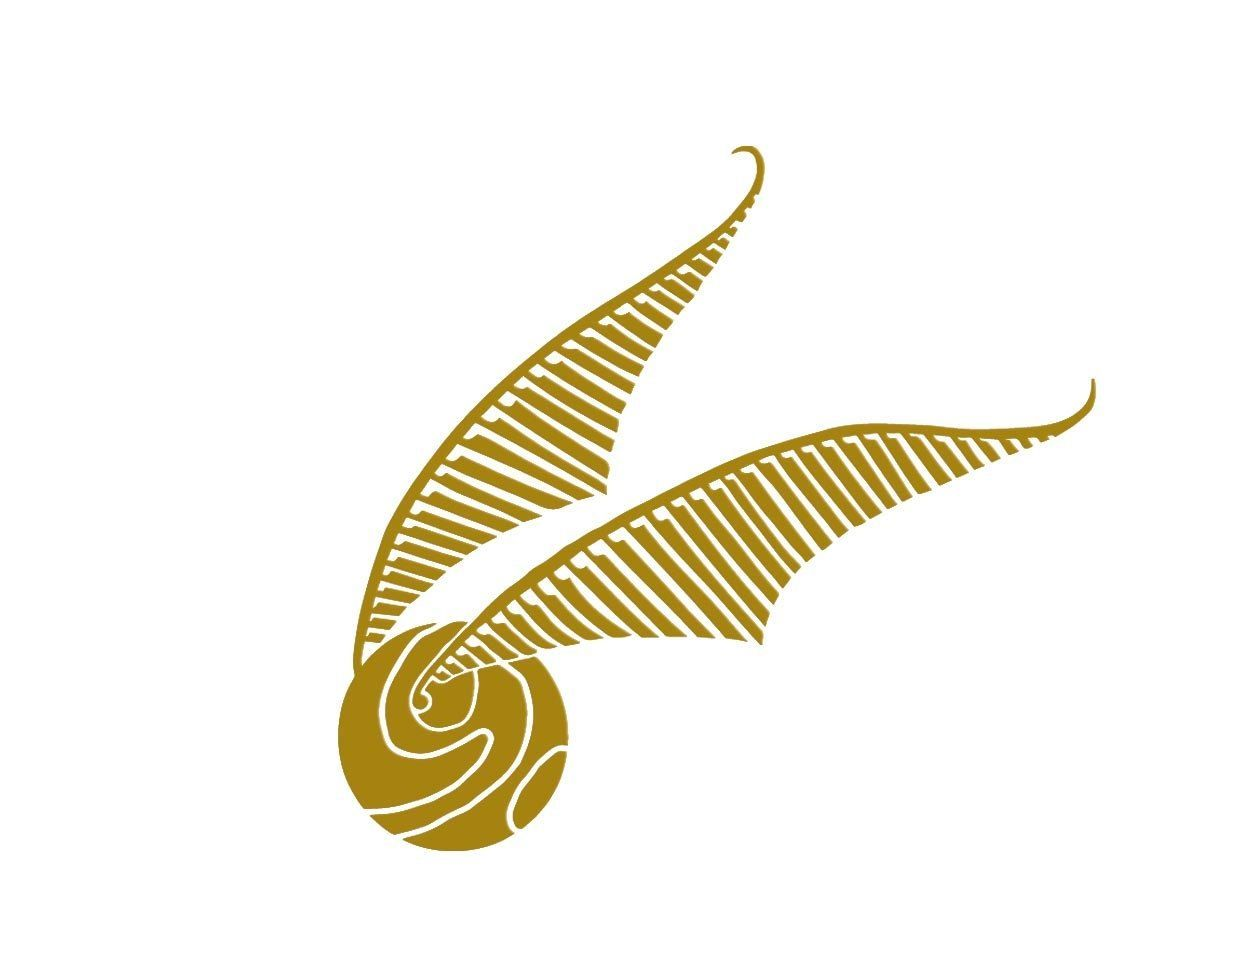 39+ Harry potter golden snitch clipart information